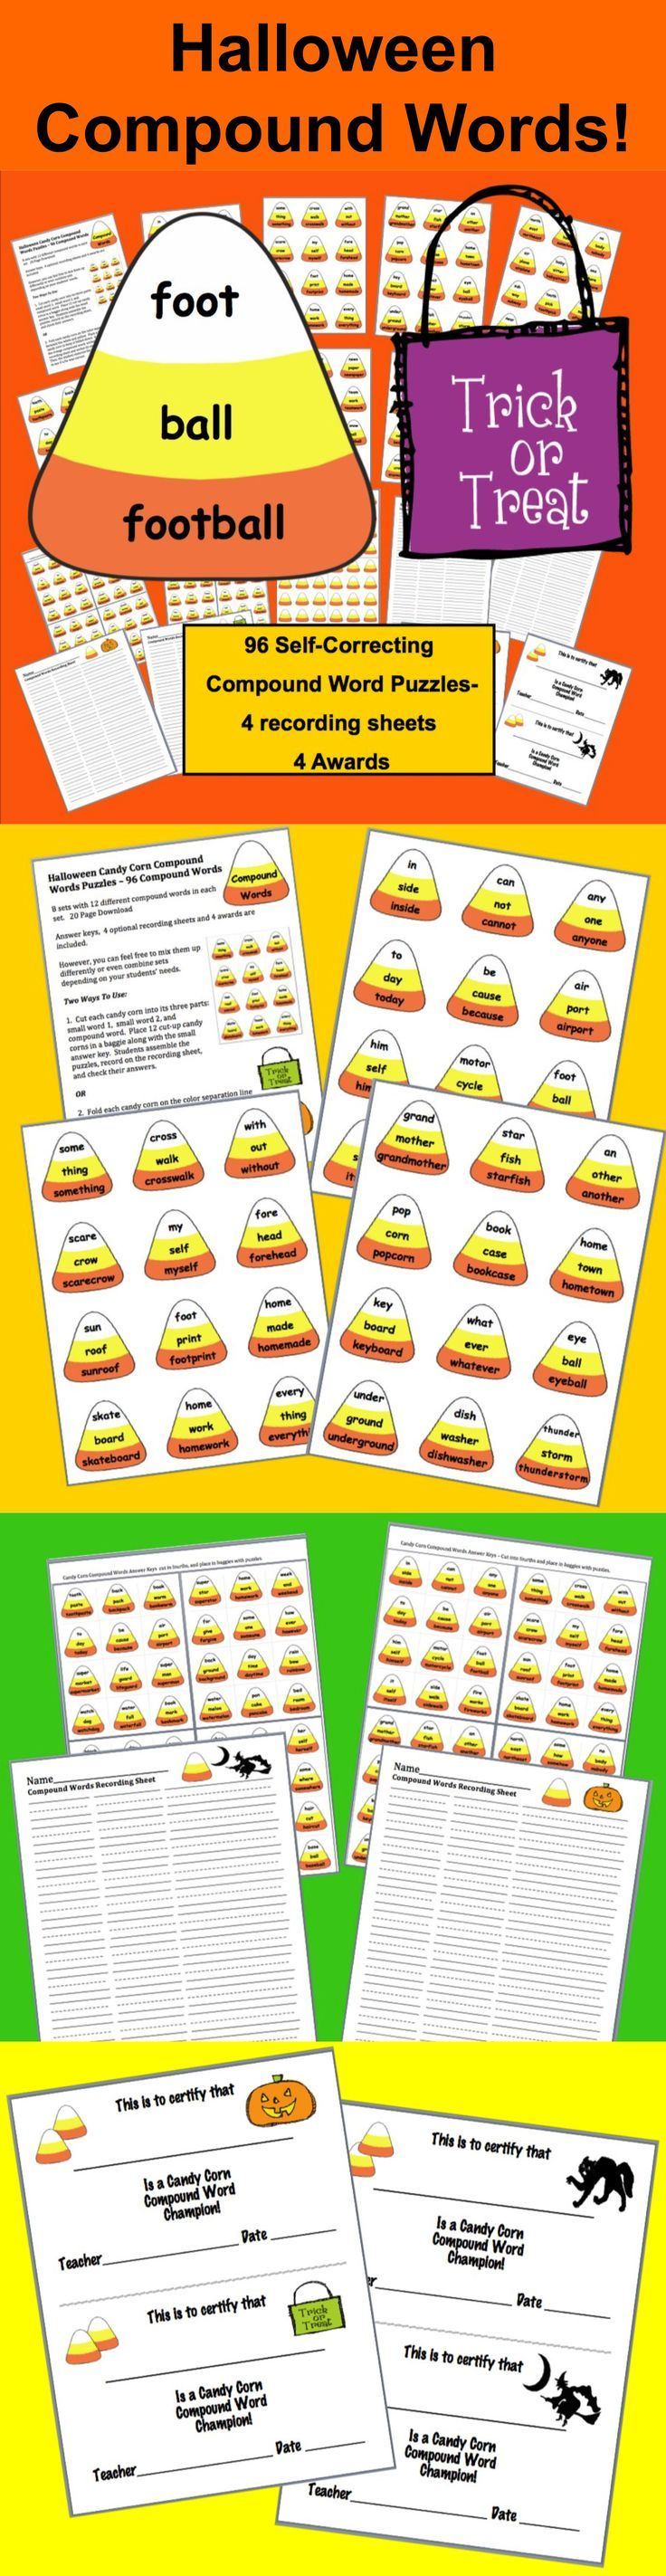 Halloween candy corn compound words puzzles 96 compound words self correcting